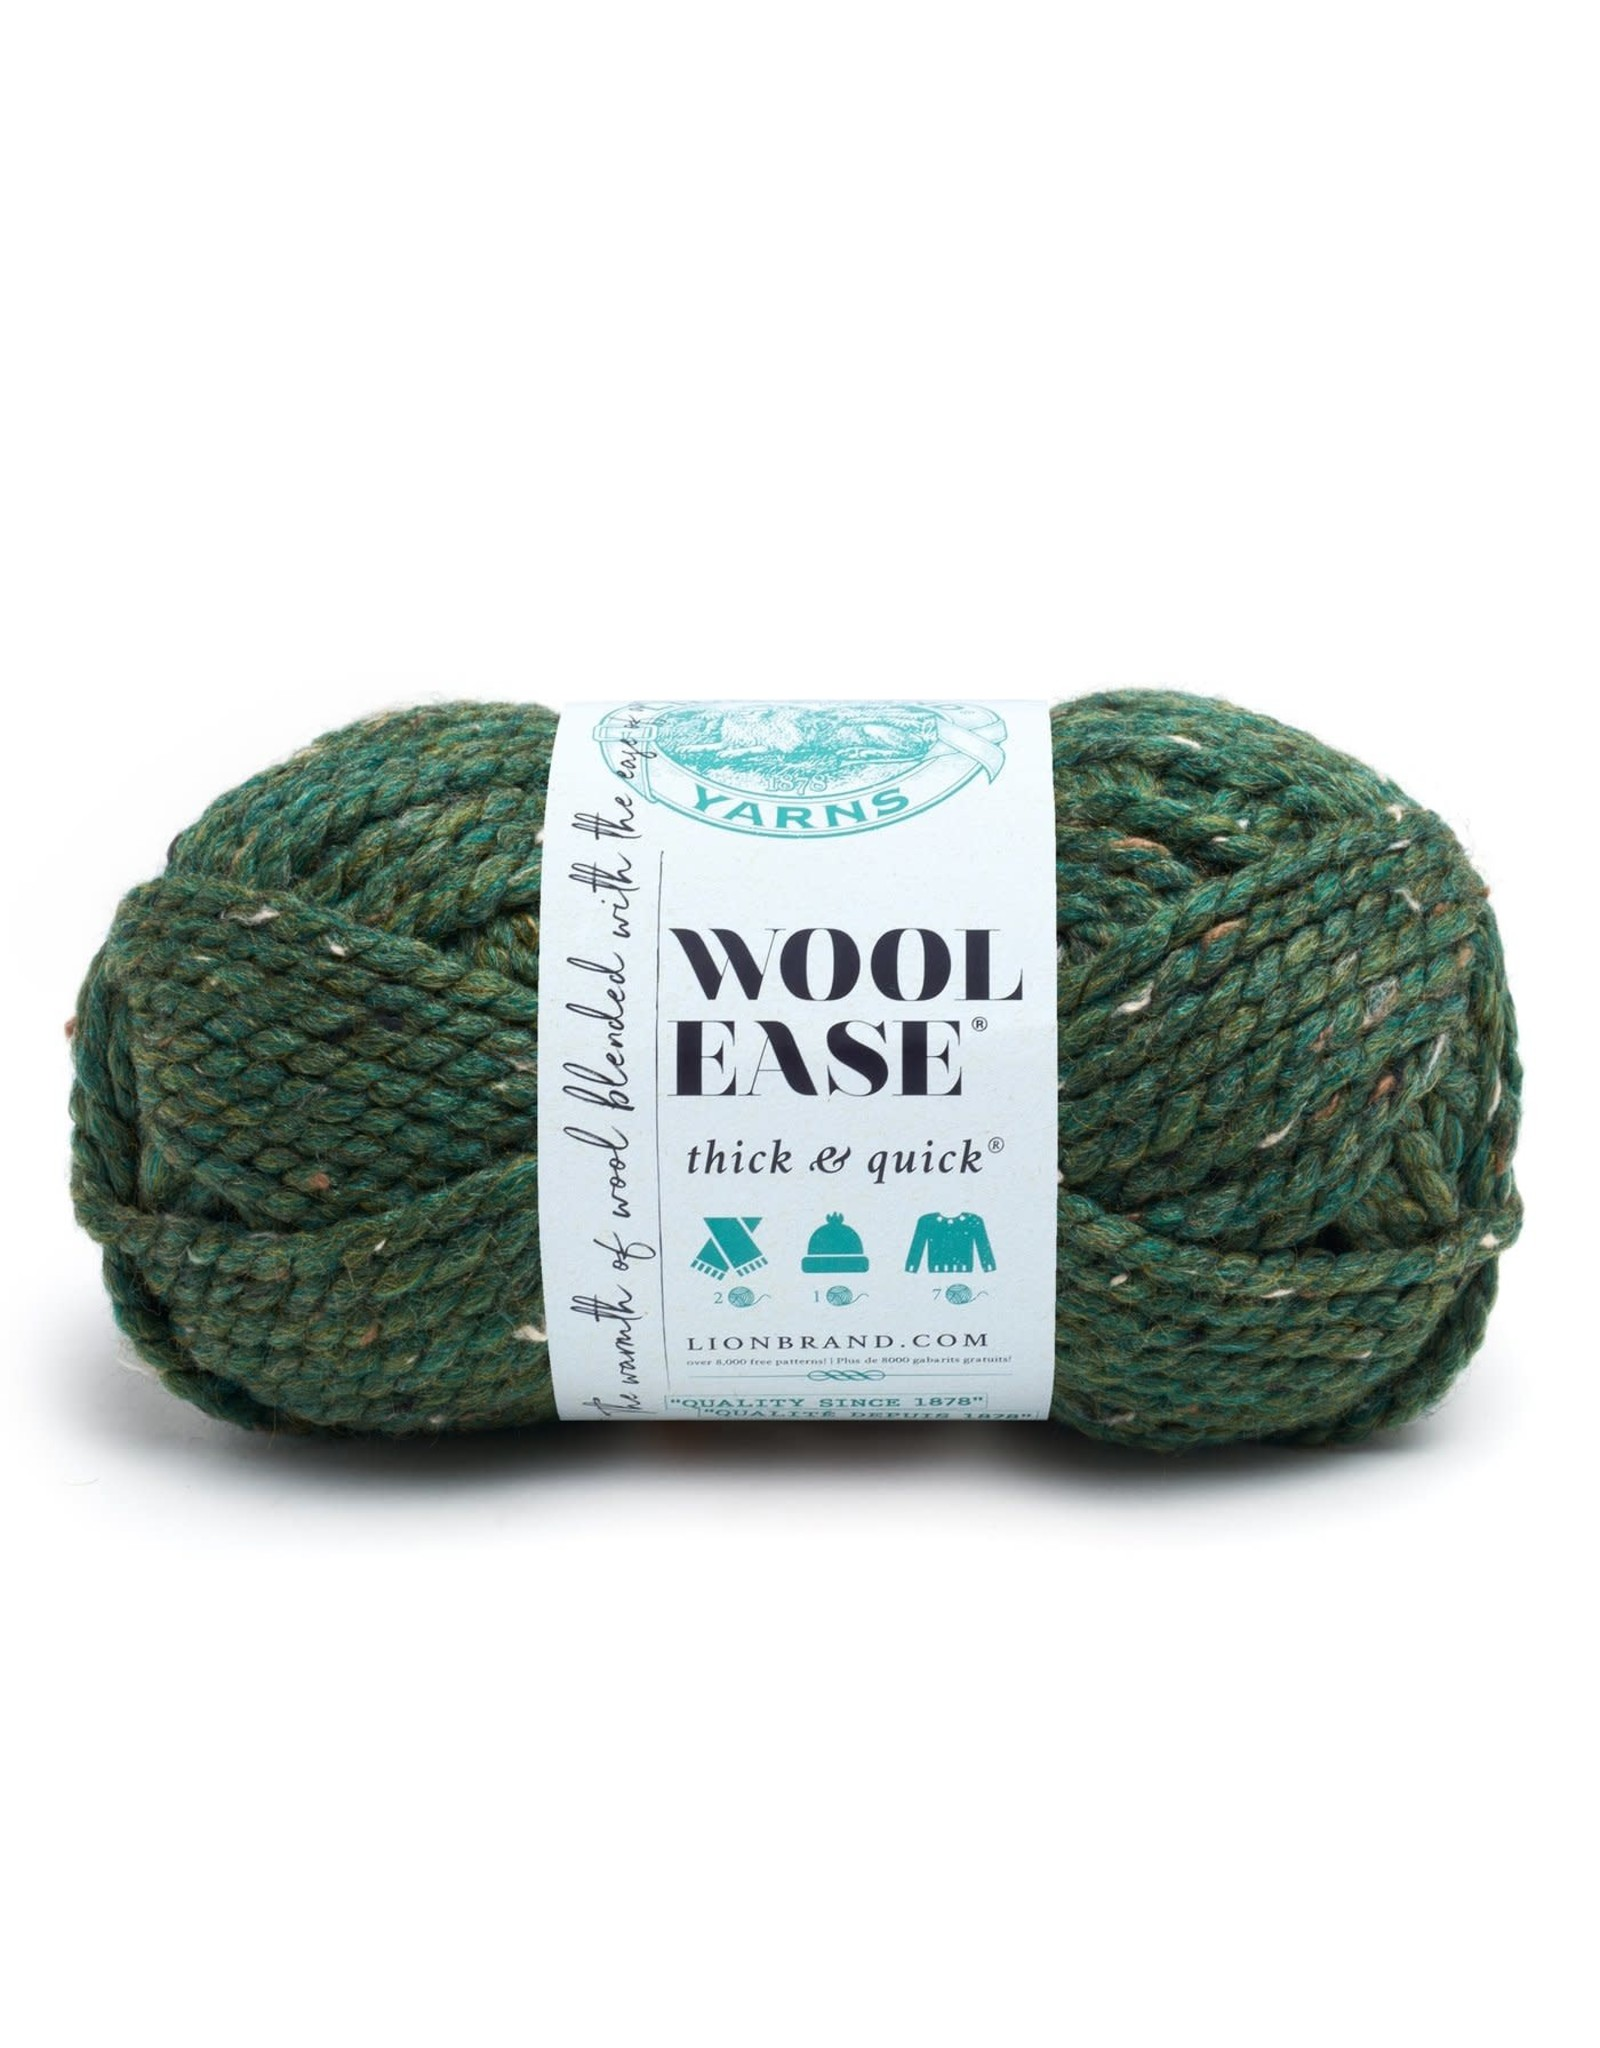 Kale - Wool Ease Thick and Quick - Lion Brand